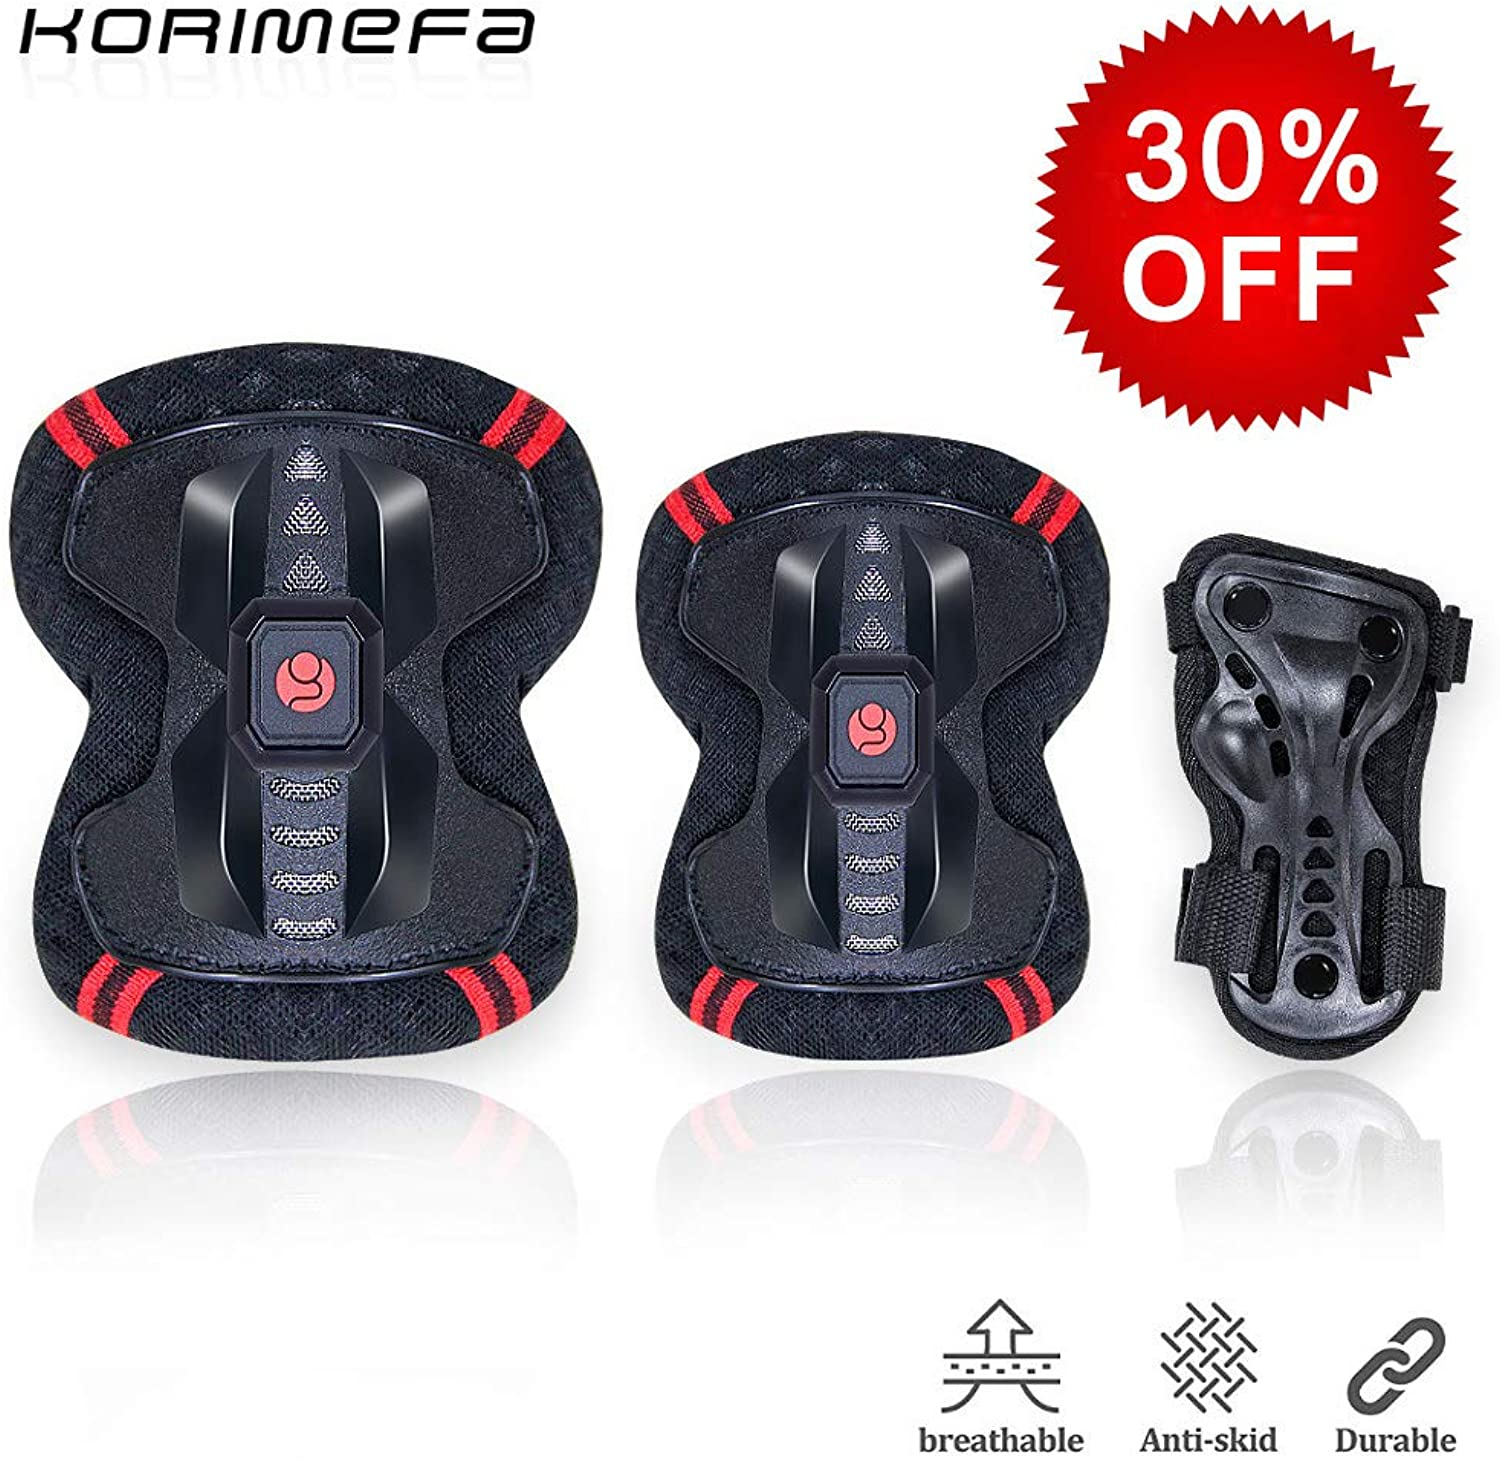 KORIMEFA Kids Predective Gear Set Knee Pads Elbow Pads with Wrist Guards for Kids 3 in 1 Kids Teen keen Pads for Skating Cycling Bike Rollerblading Scooter